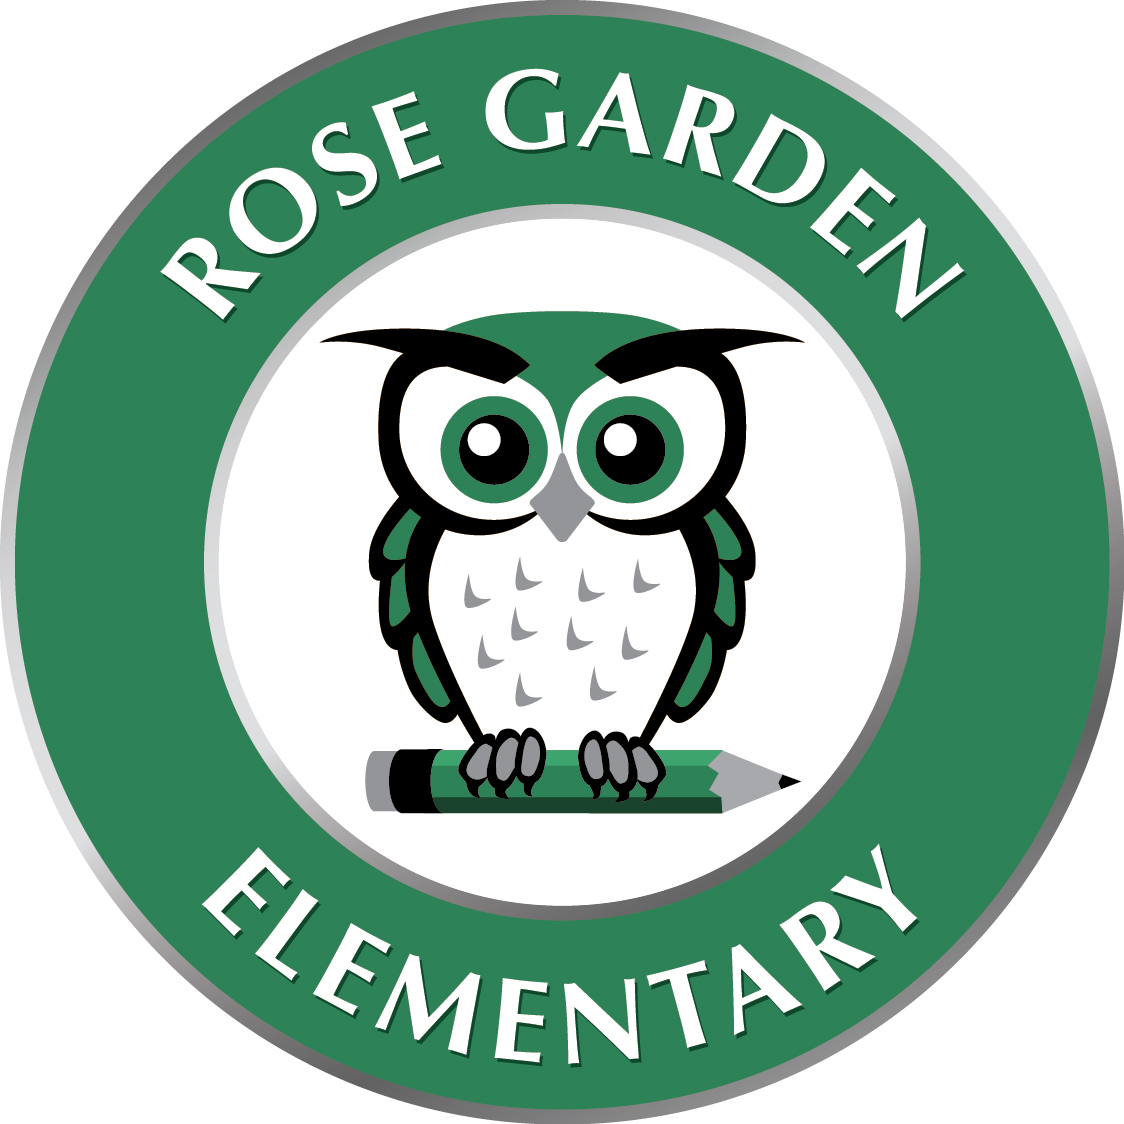 Rose Garden Elementary School Homepage